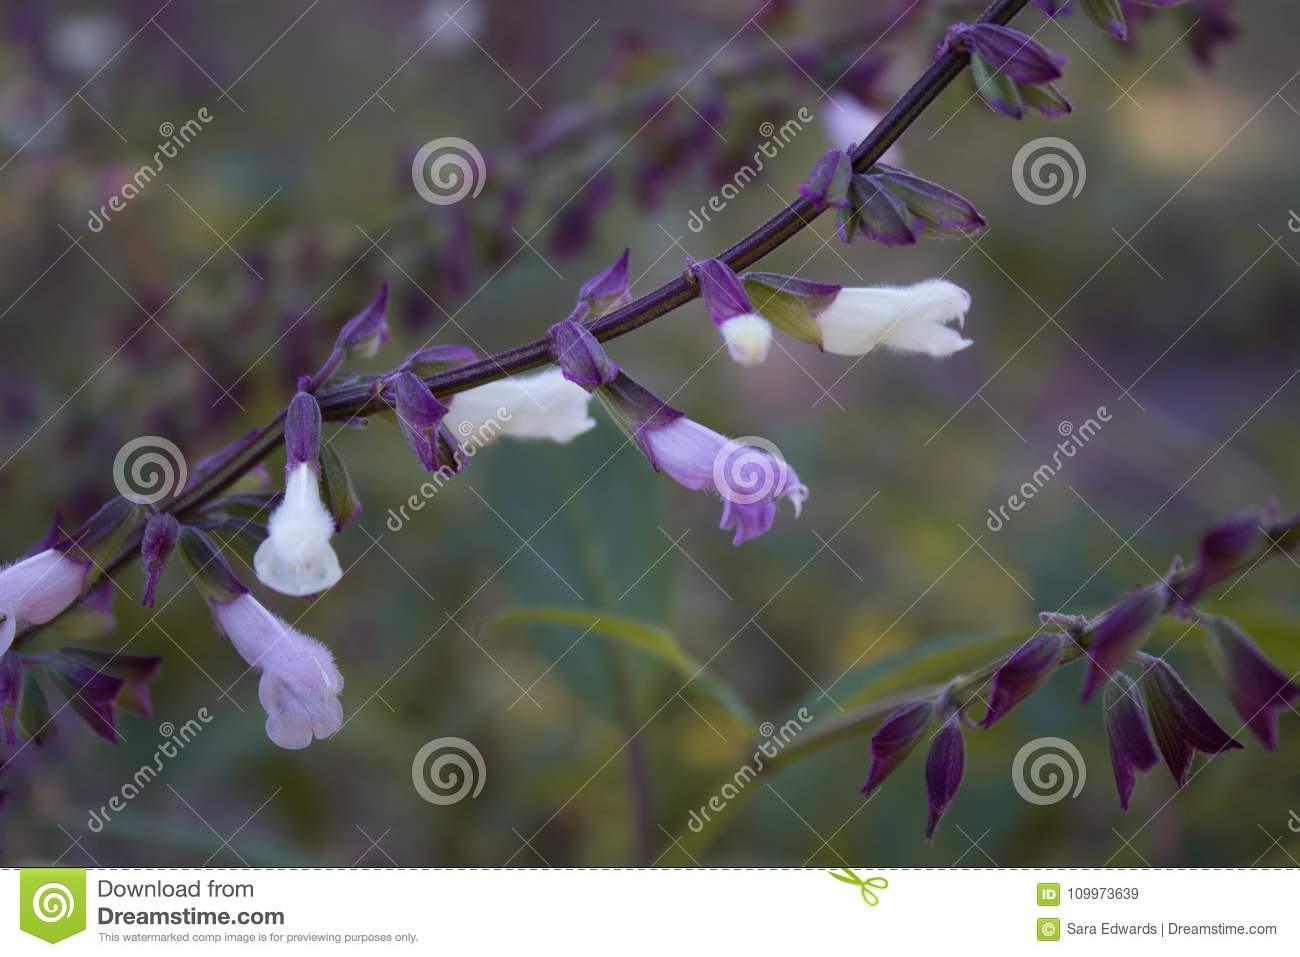 Gorgeous purple and white Mexican sage in a garden in the spring